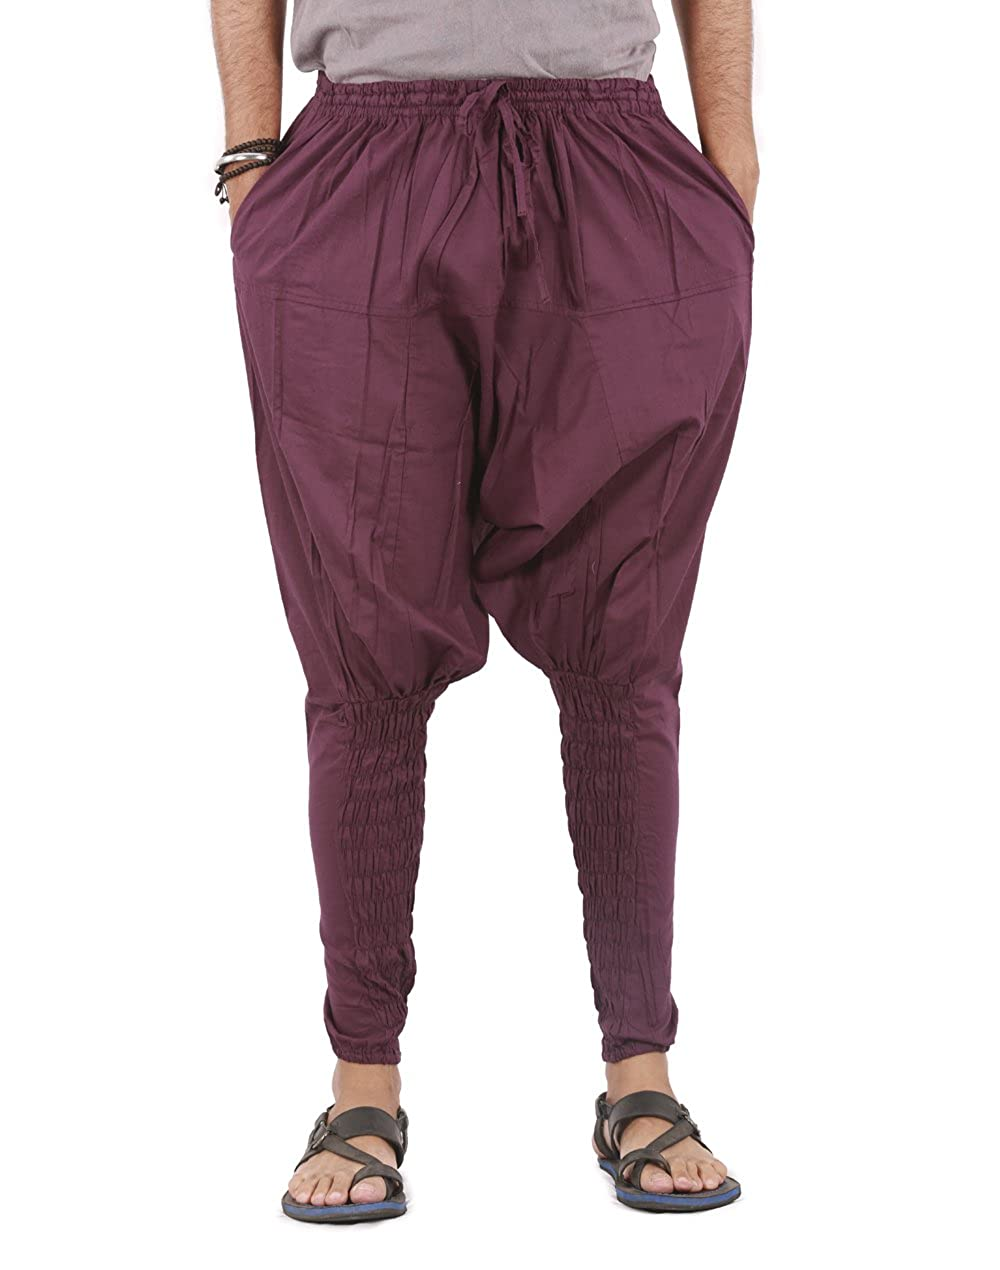 Harem Pants Mens Womens Yoga Cotton Boho Hippie Wide Leg Pants - Ninja Style